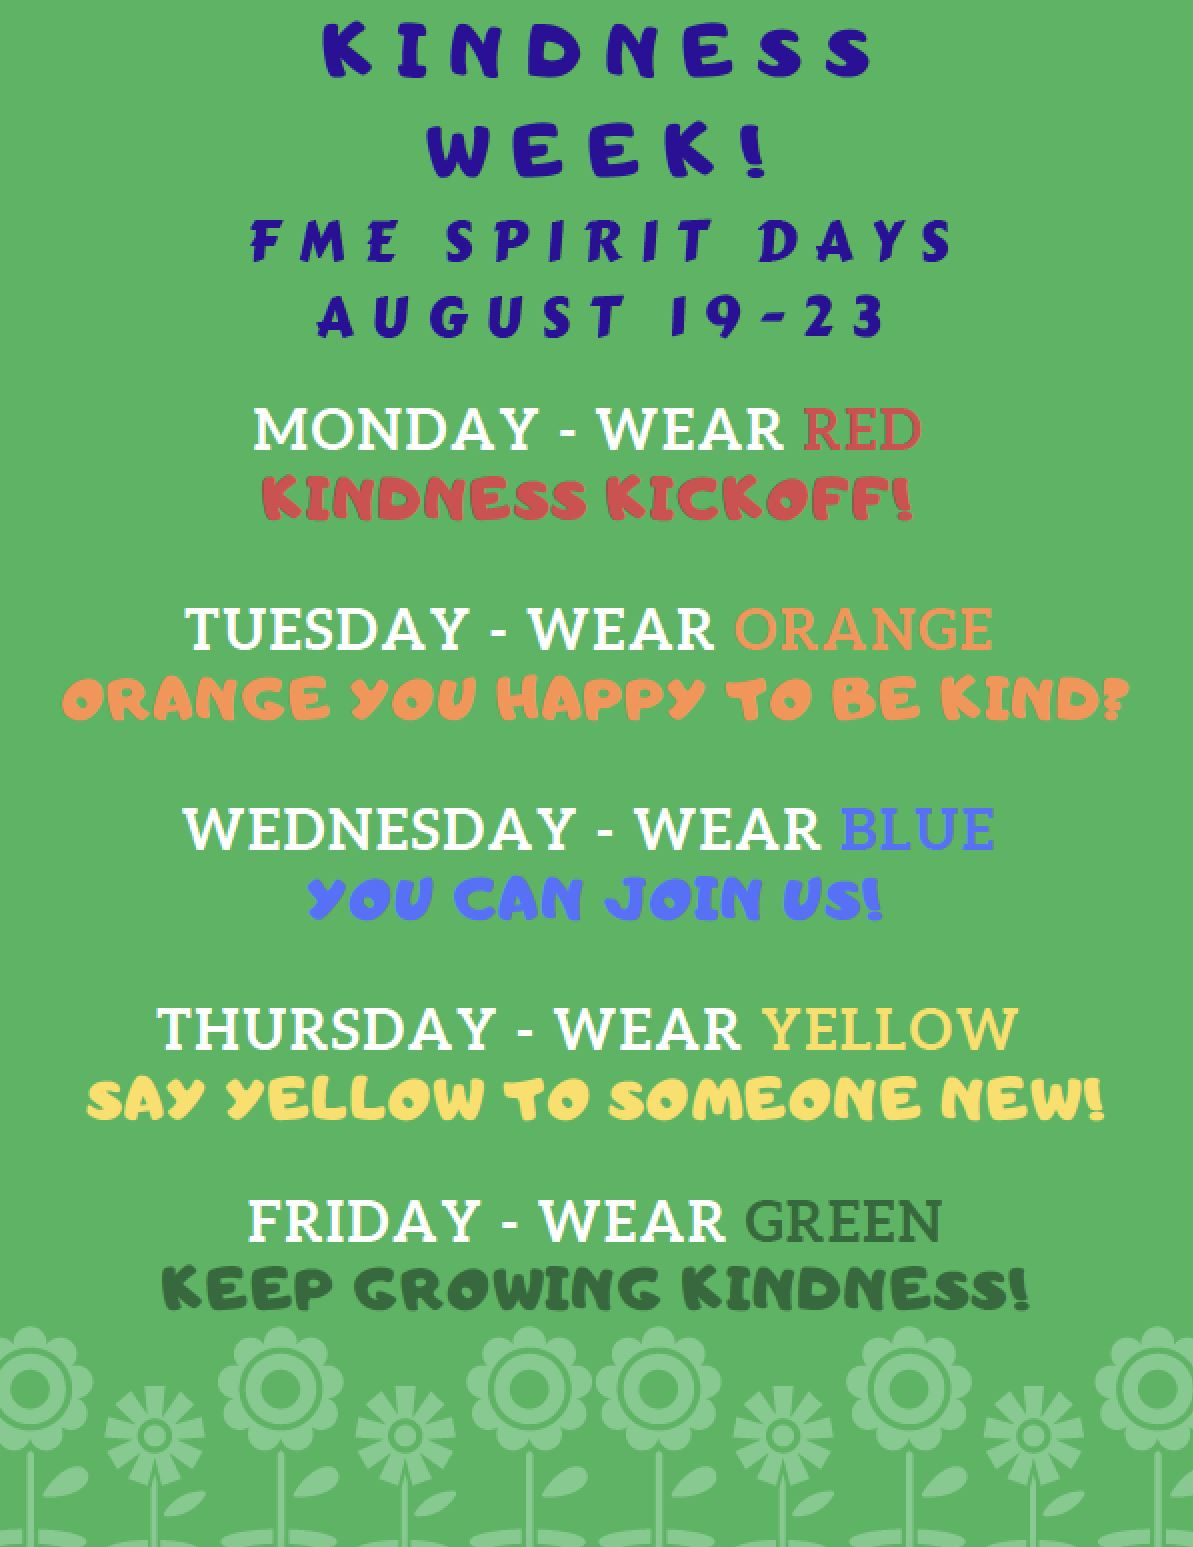 FME Spirit Days